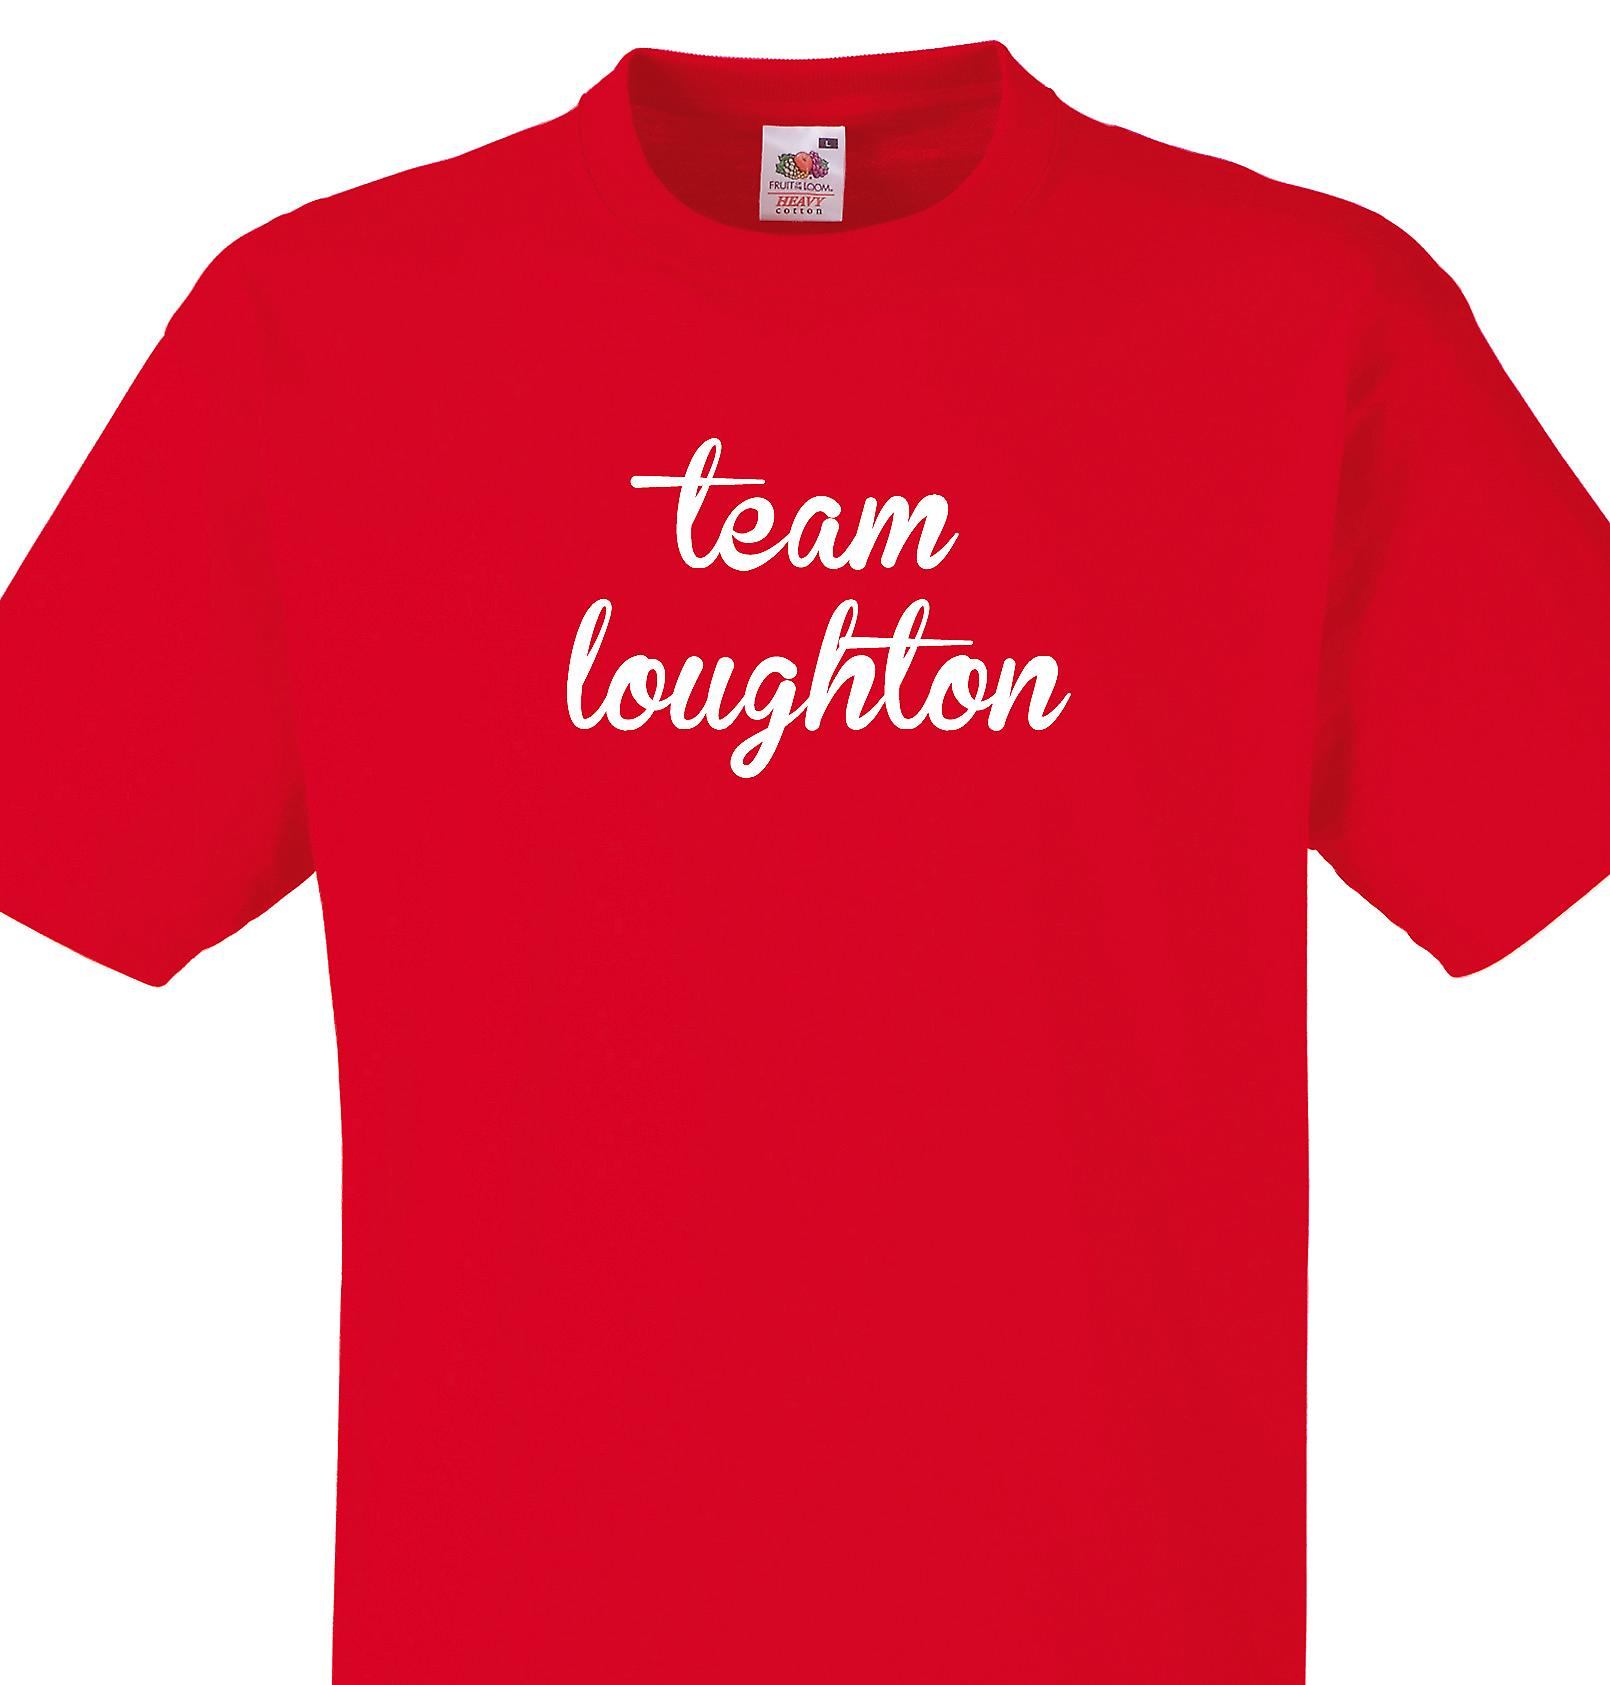 Team Loughton Red T shirt